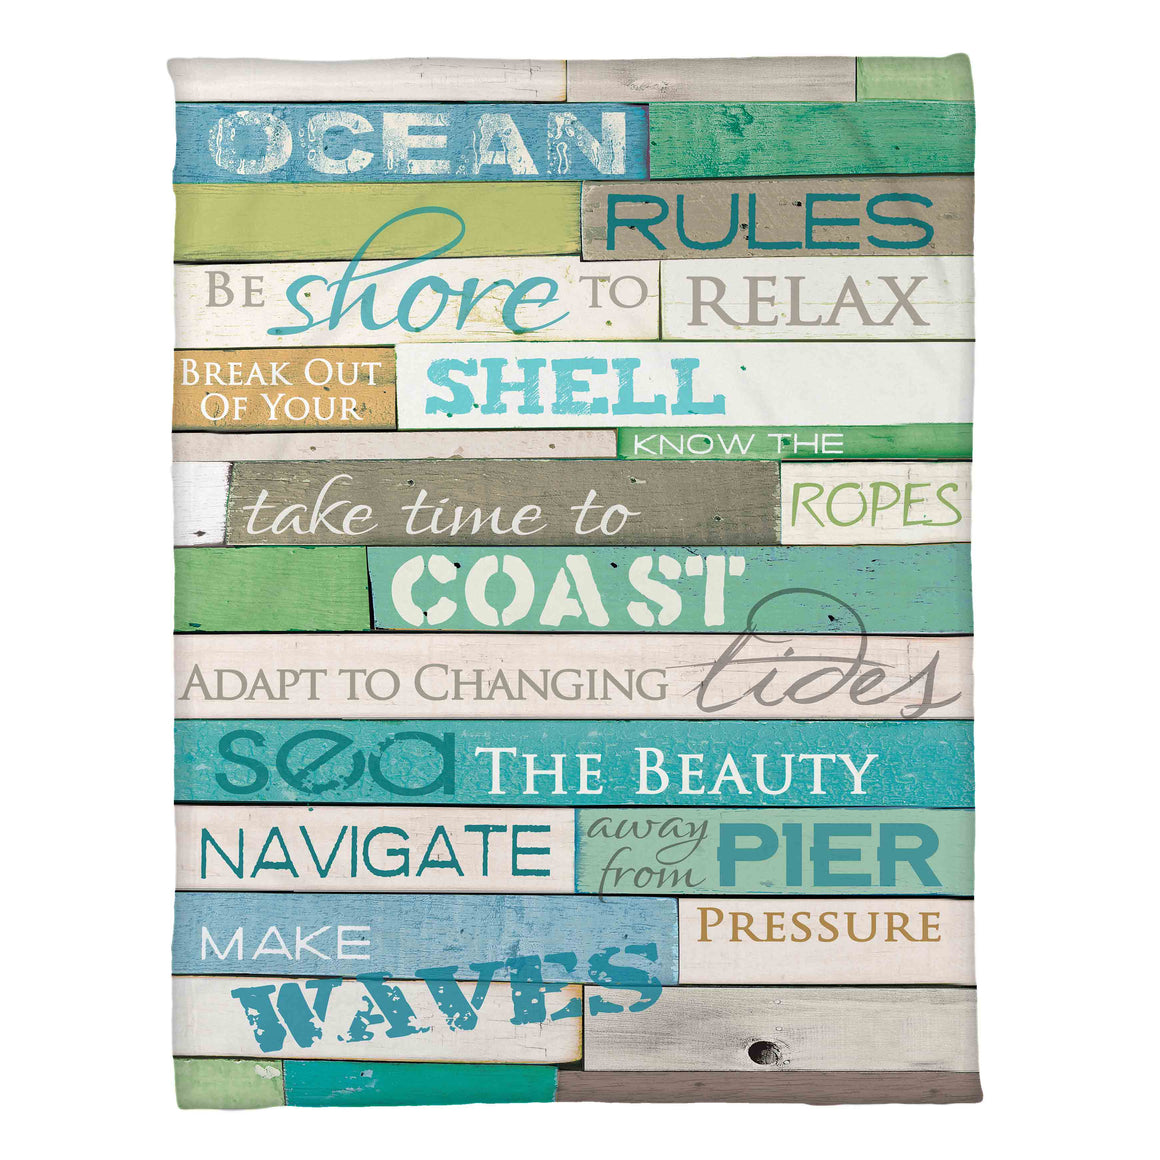 The Ocean Rules Fleece Throw displays fun coastal words to encourage you to take the relaxing vacation you deserve